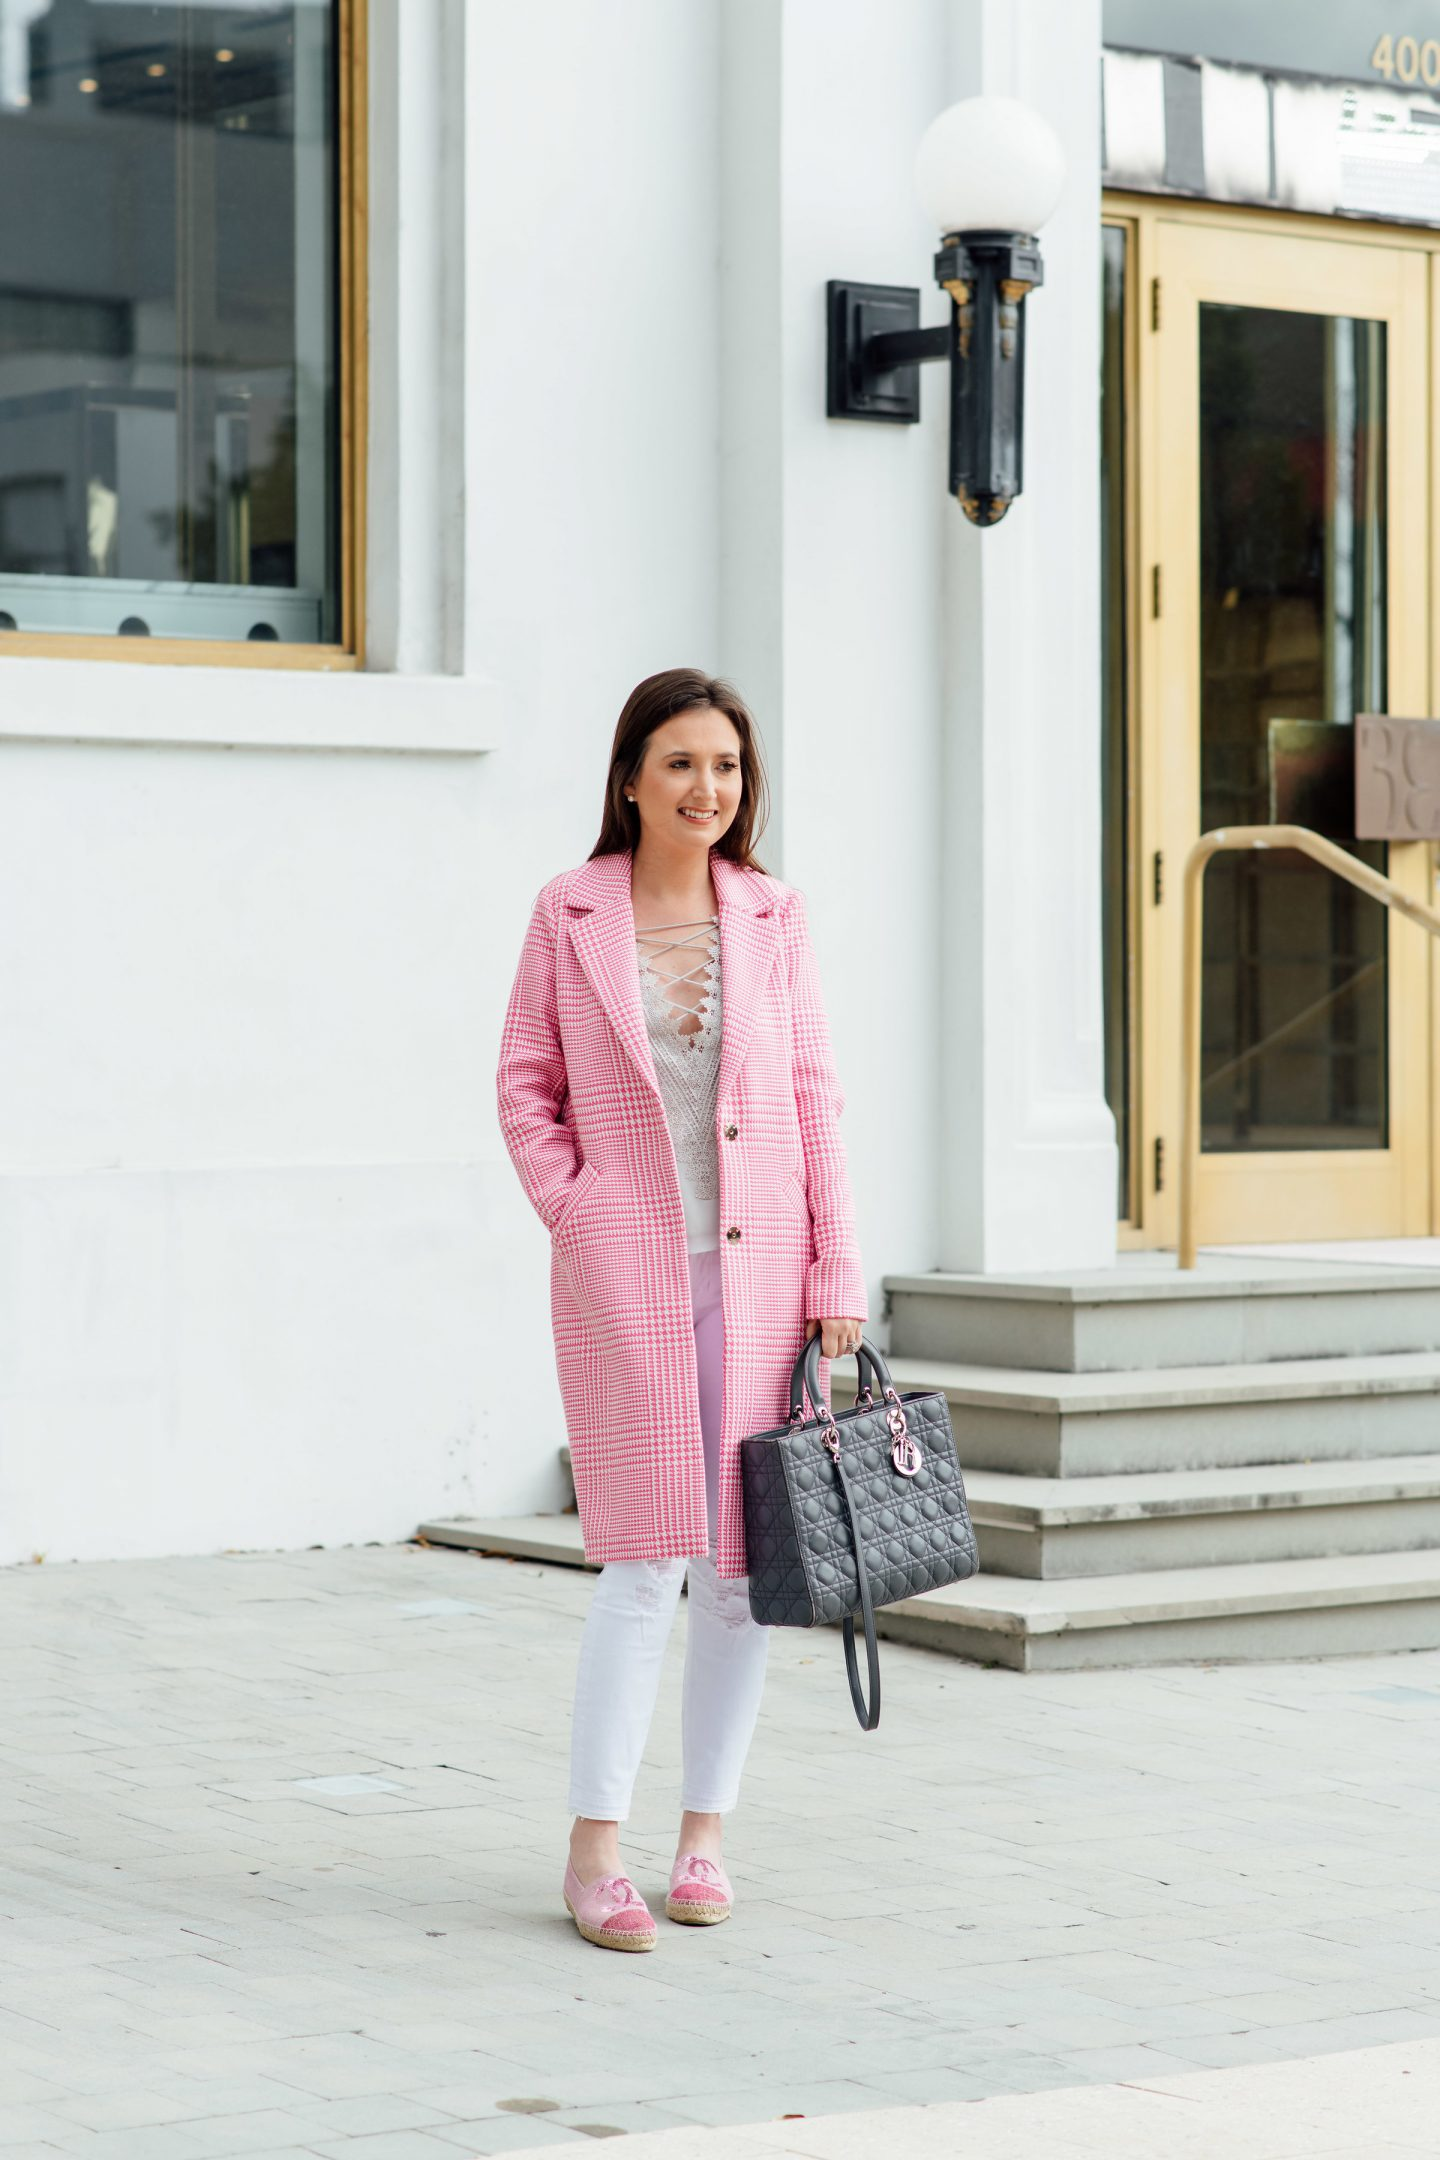 5 wardrobe essentials that will get you excited to start your day, wardrobe essentials, WAYF posie came, wayf camisole, pink trench coat, asos coat, white jeans, pink checkered coat, lady Dior, lady Dior large, Chanel espadrilles, espadrilles, Miami fashion blogger, fashion blogger